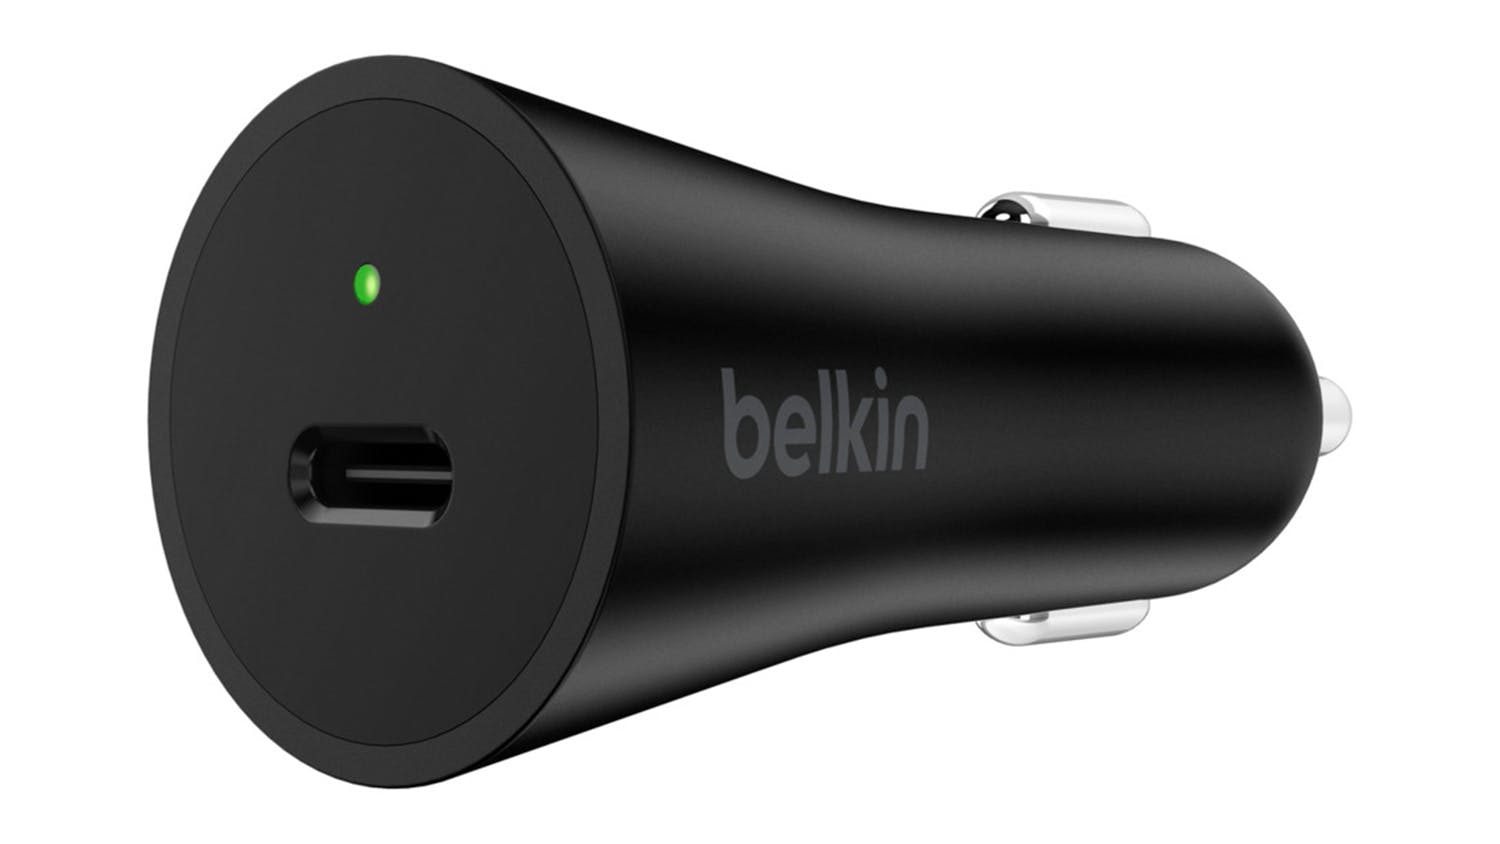 Belkin 27W USB-C Car Charger with USB-C Cable